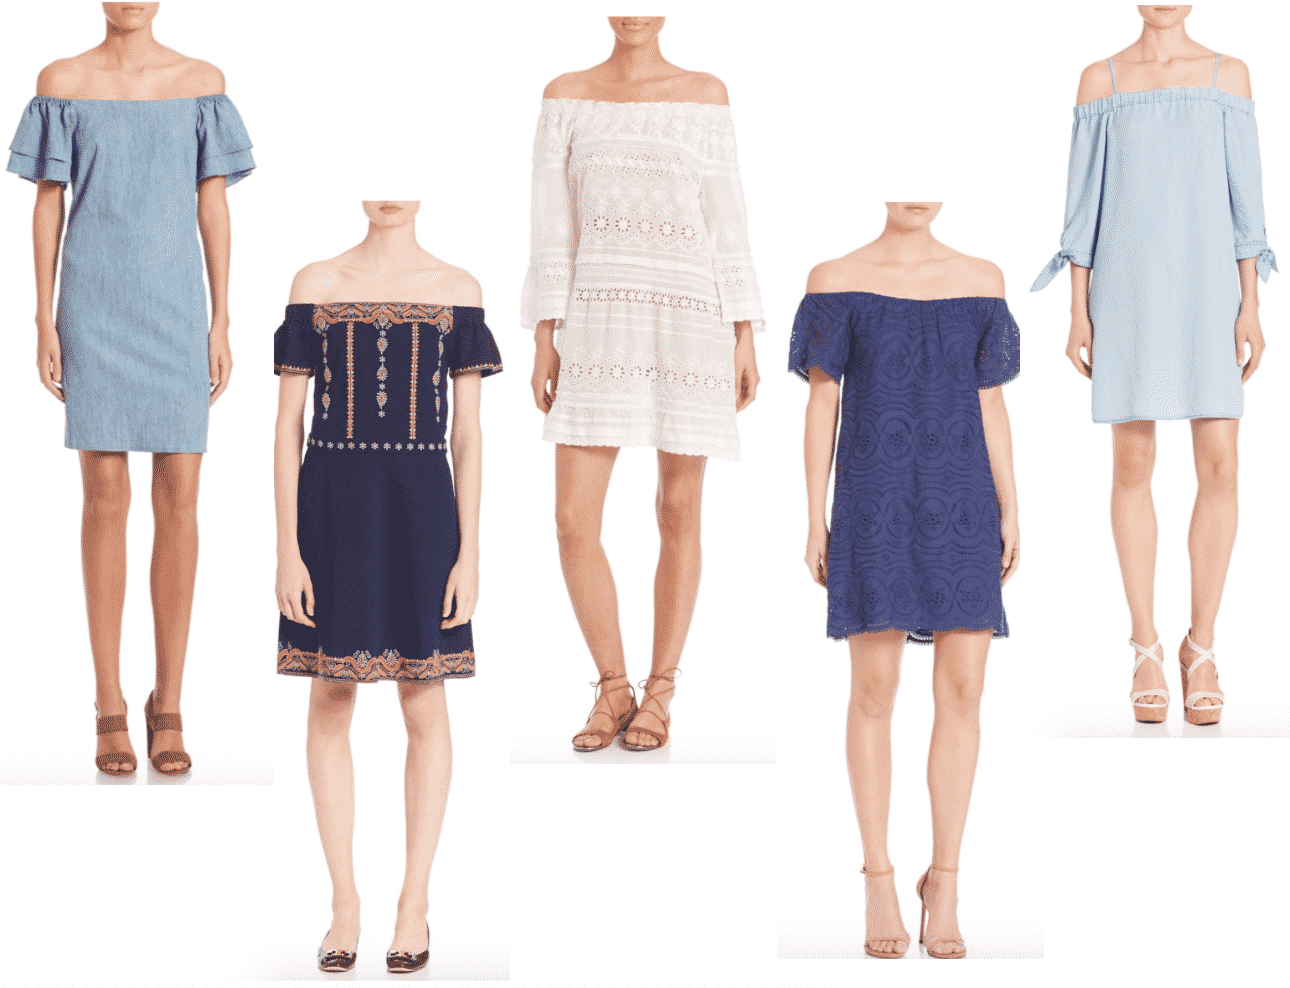 Buy Now:  THE Summer Dress